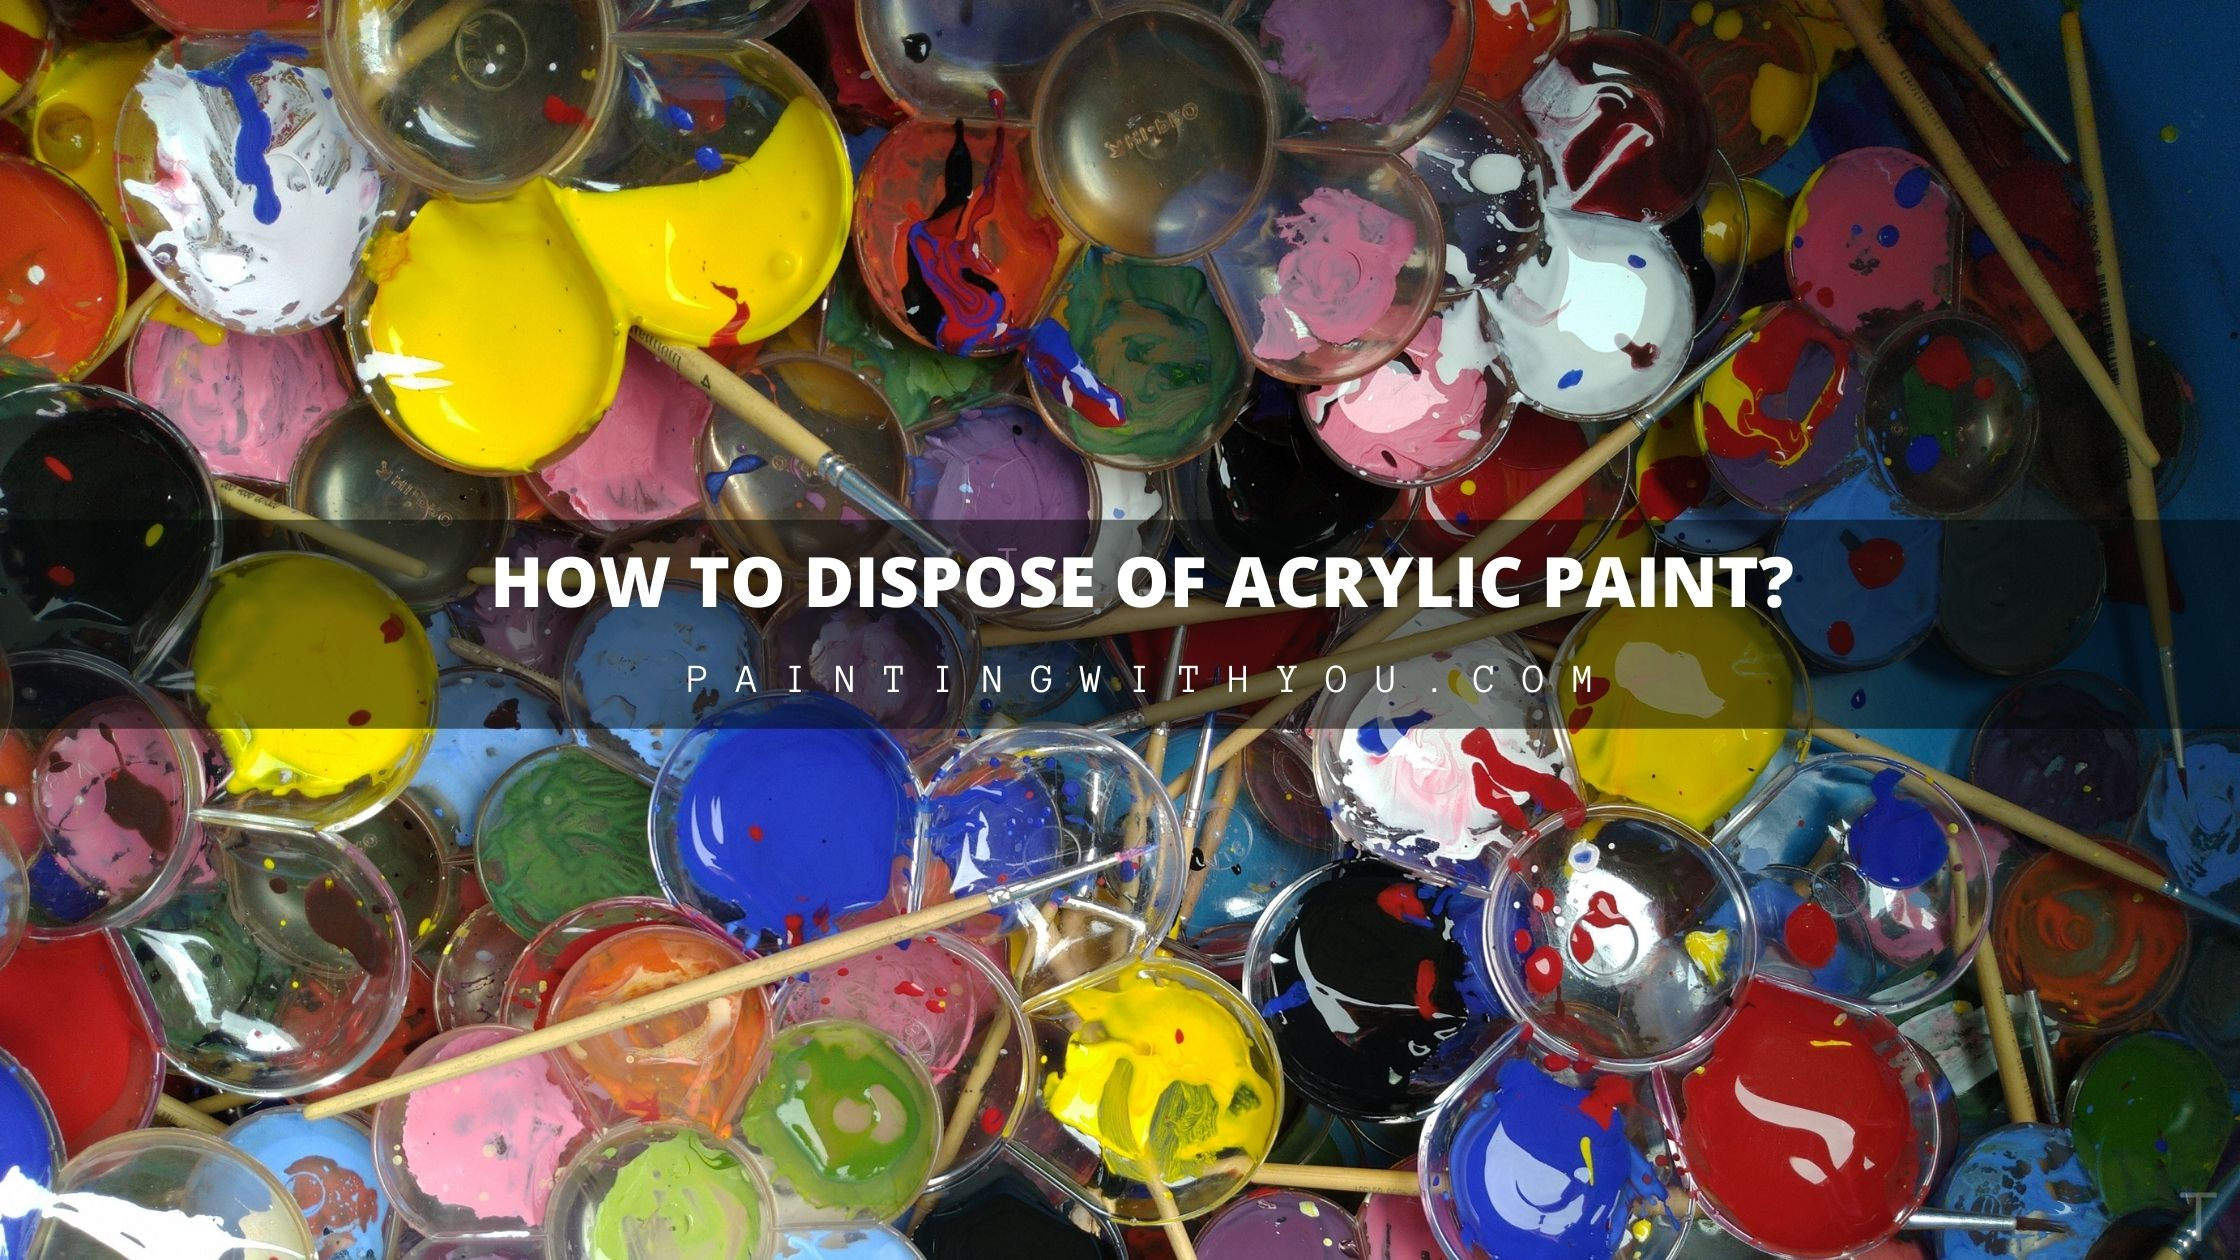 How To Dispose my Acrylic Paints